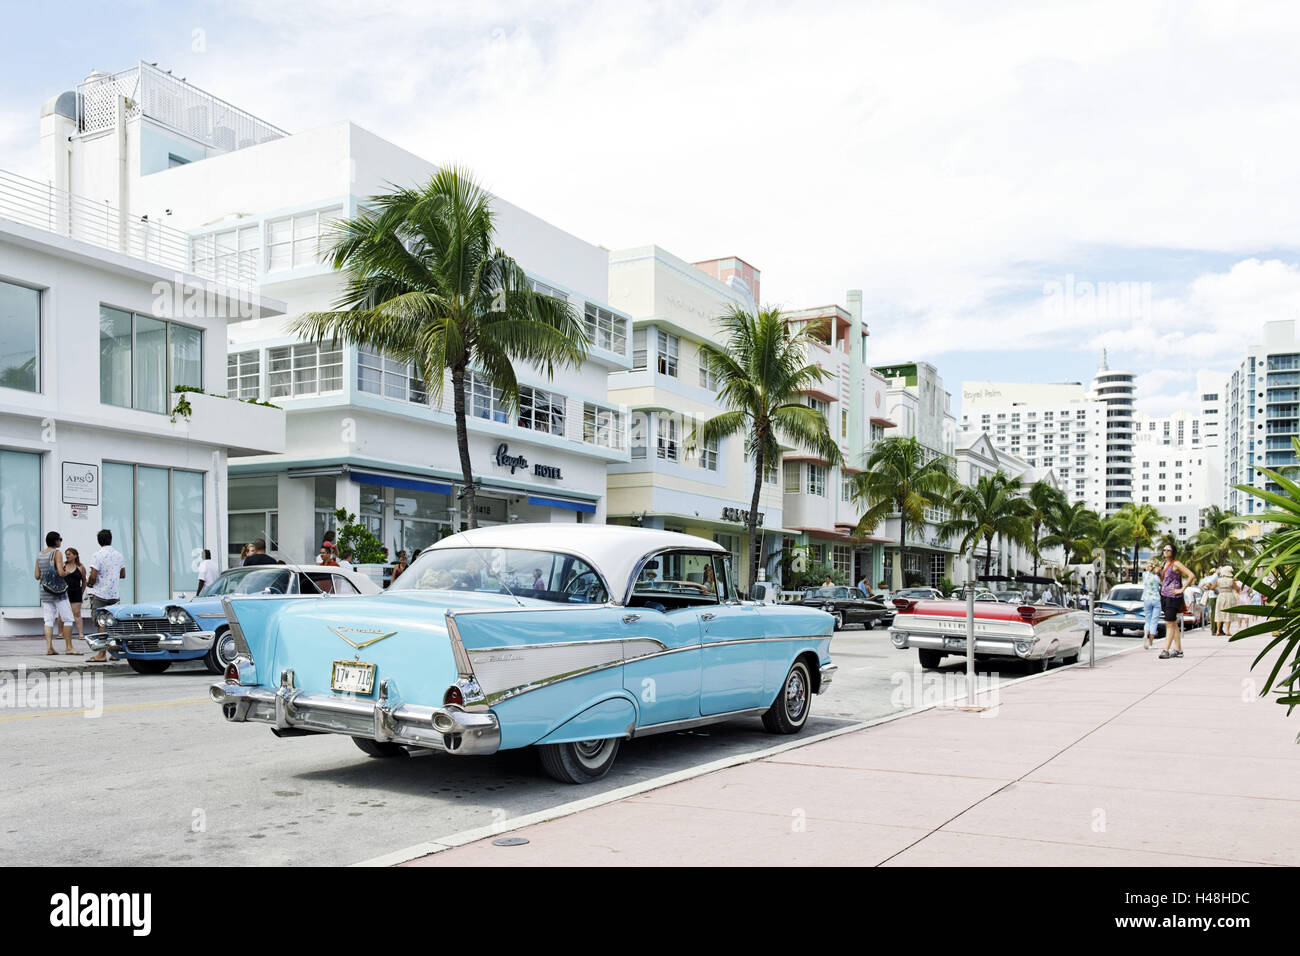 Chevrolet Bel Air, year of manufacture 1957, the fifties, American vintage car, Ocean Drive, Miami South Beach, Stock Photo